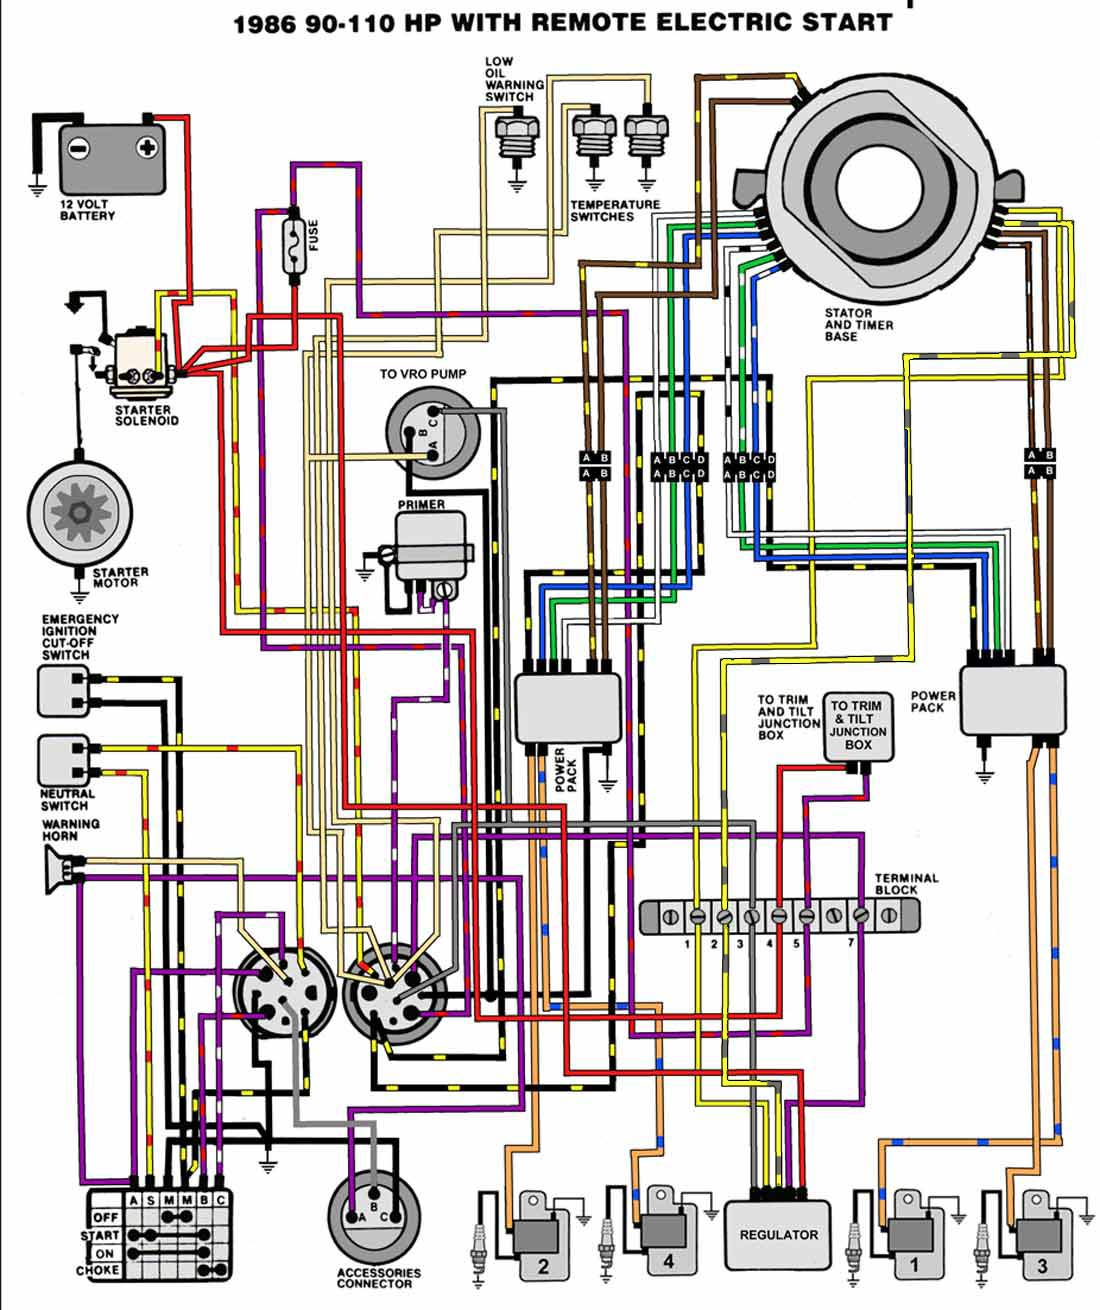 Omc Key Switch Diagram | Machine Repair Manual Omc Starter Switch Wiring Diagram on